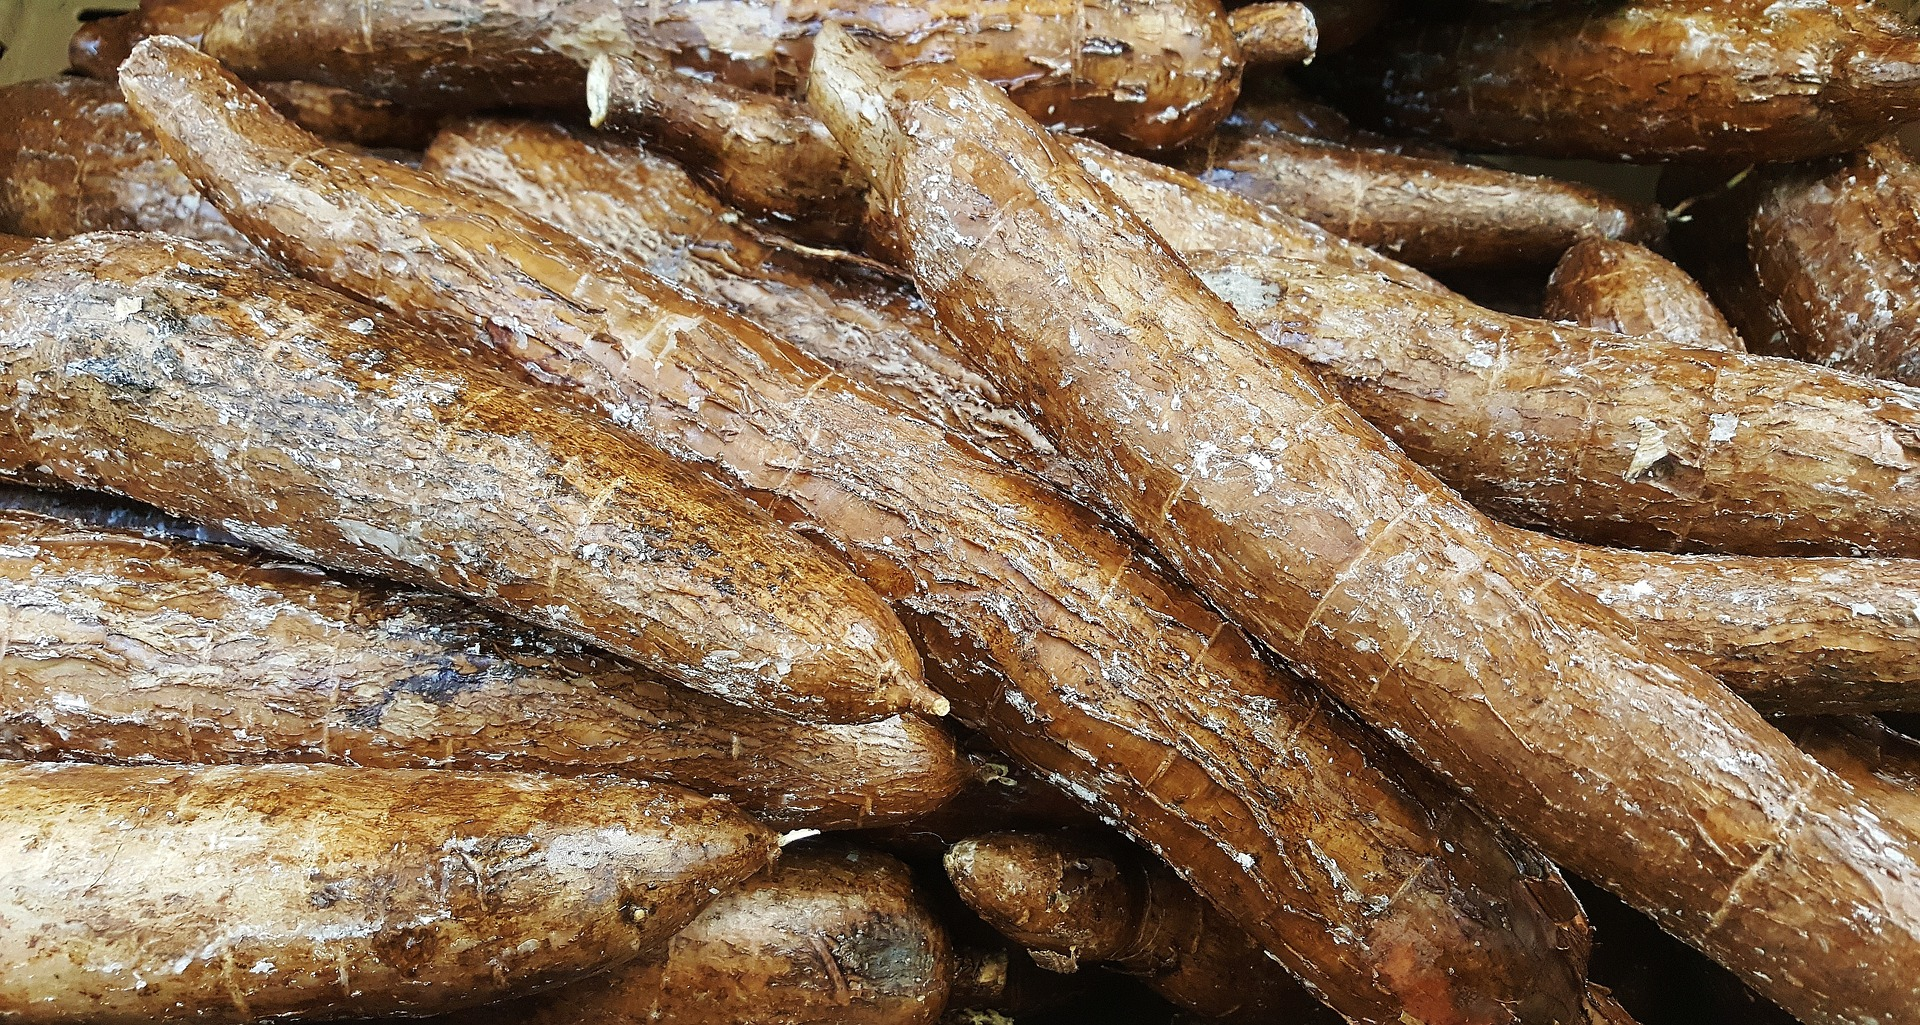 Cassava is a tuber vegetable grown widely in Africa. It is a common source of carbohydrates in Africa.